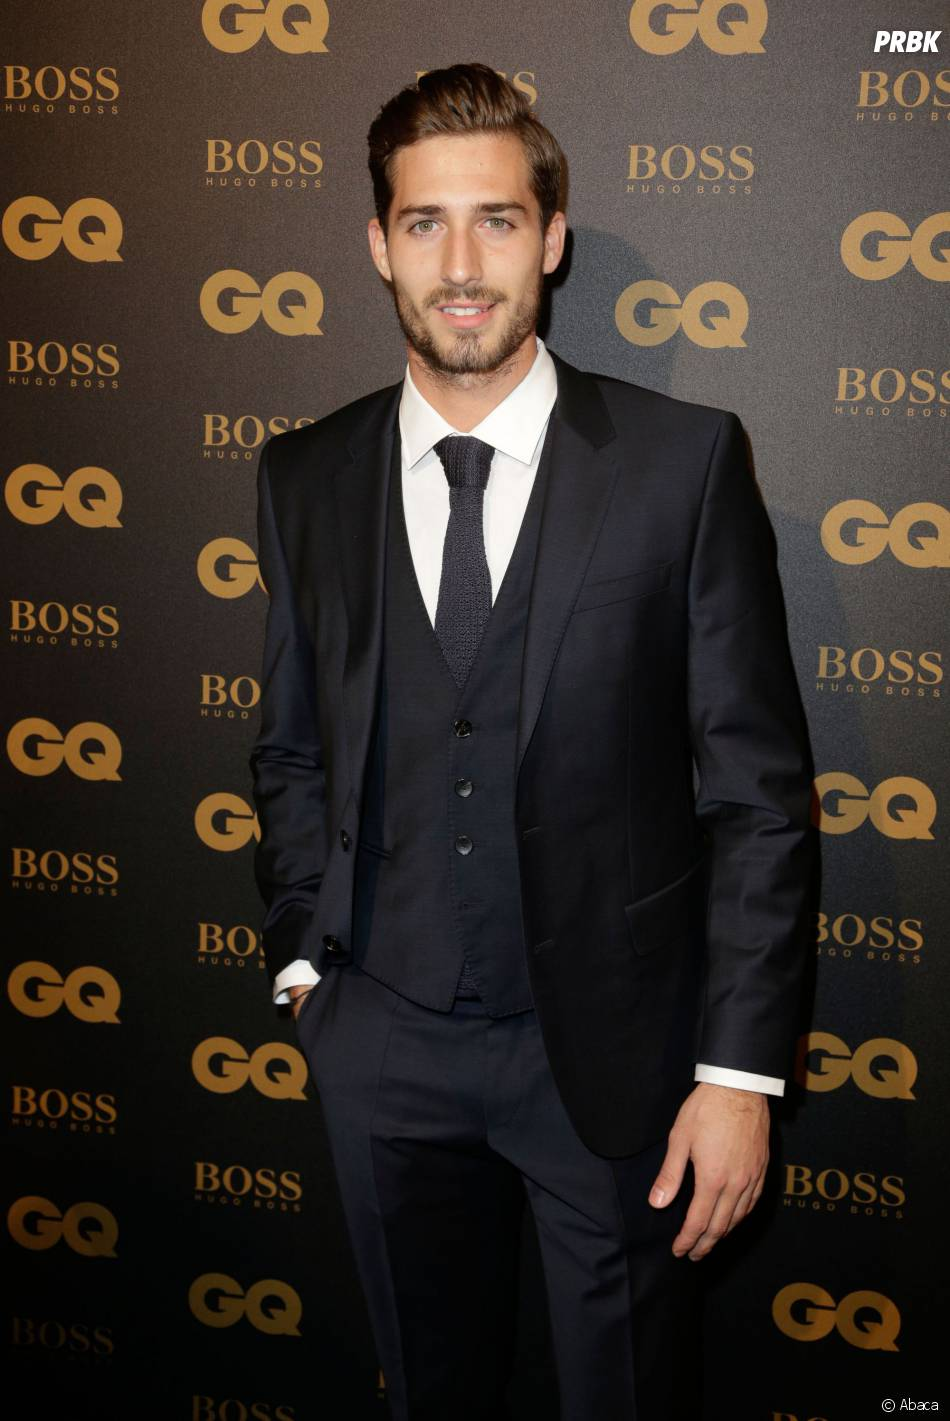 422076-kevin-trapp-aux-gq-awards-a-paris-le-25-950x0-2.jpg